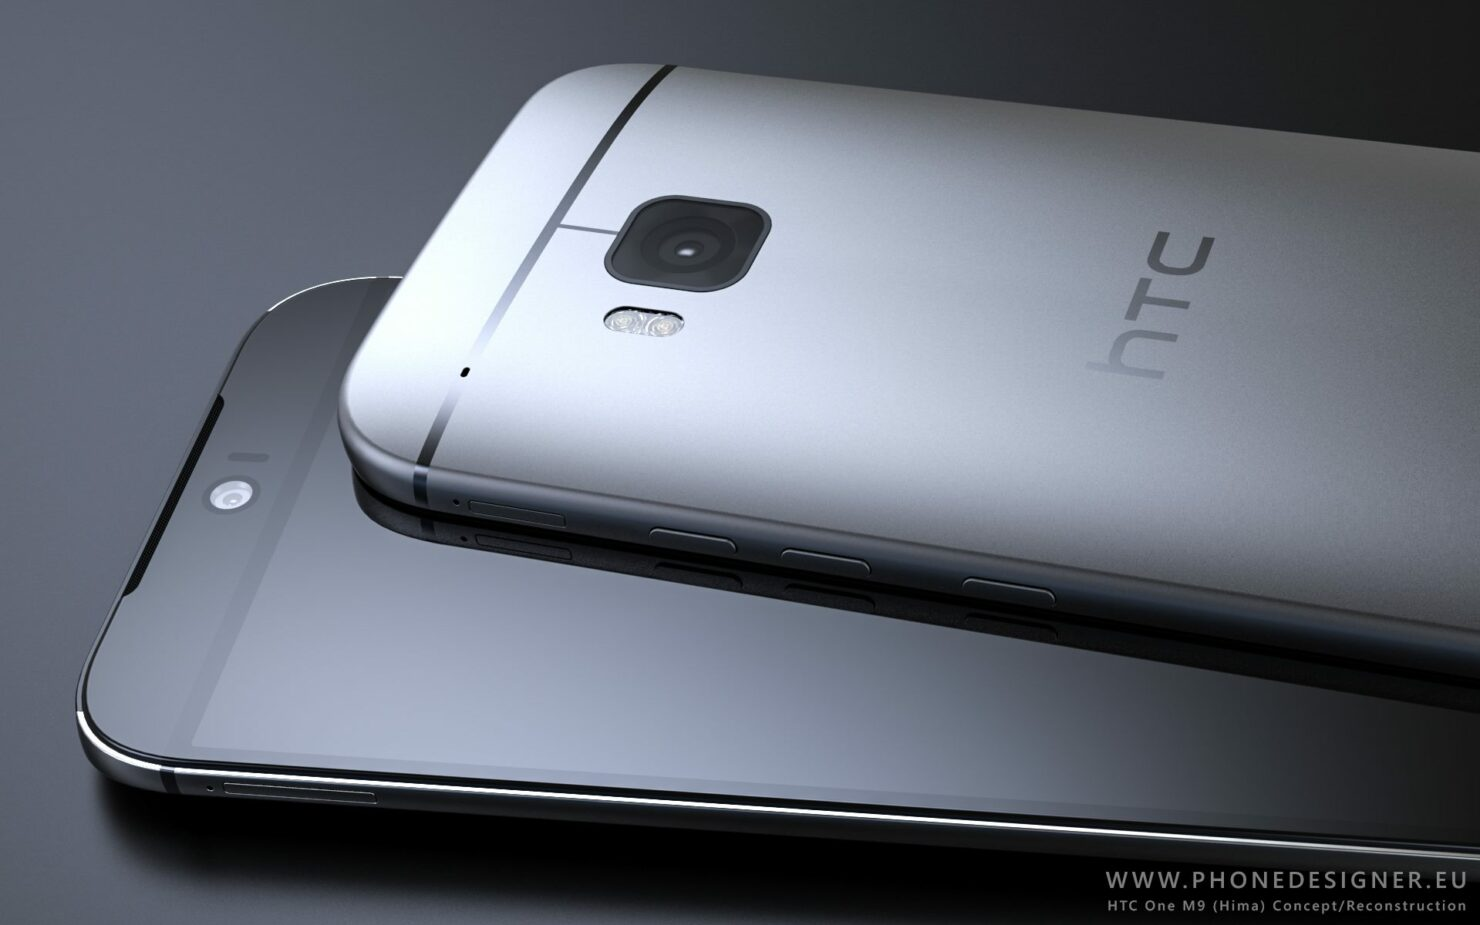 htc-one-m9-renders-this-phone-is-on-fire